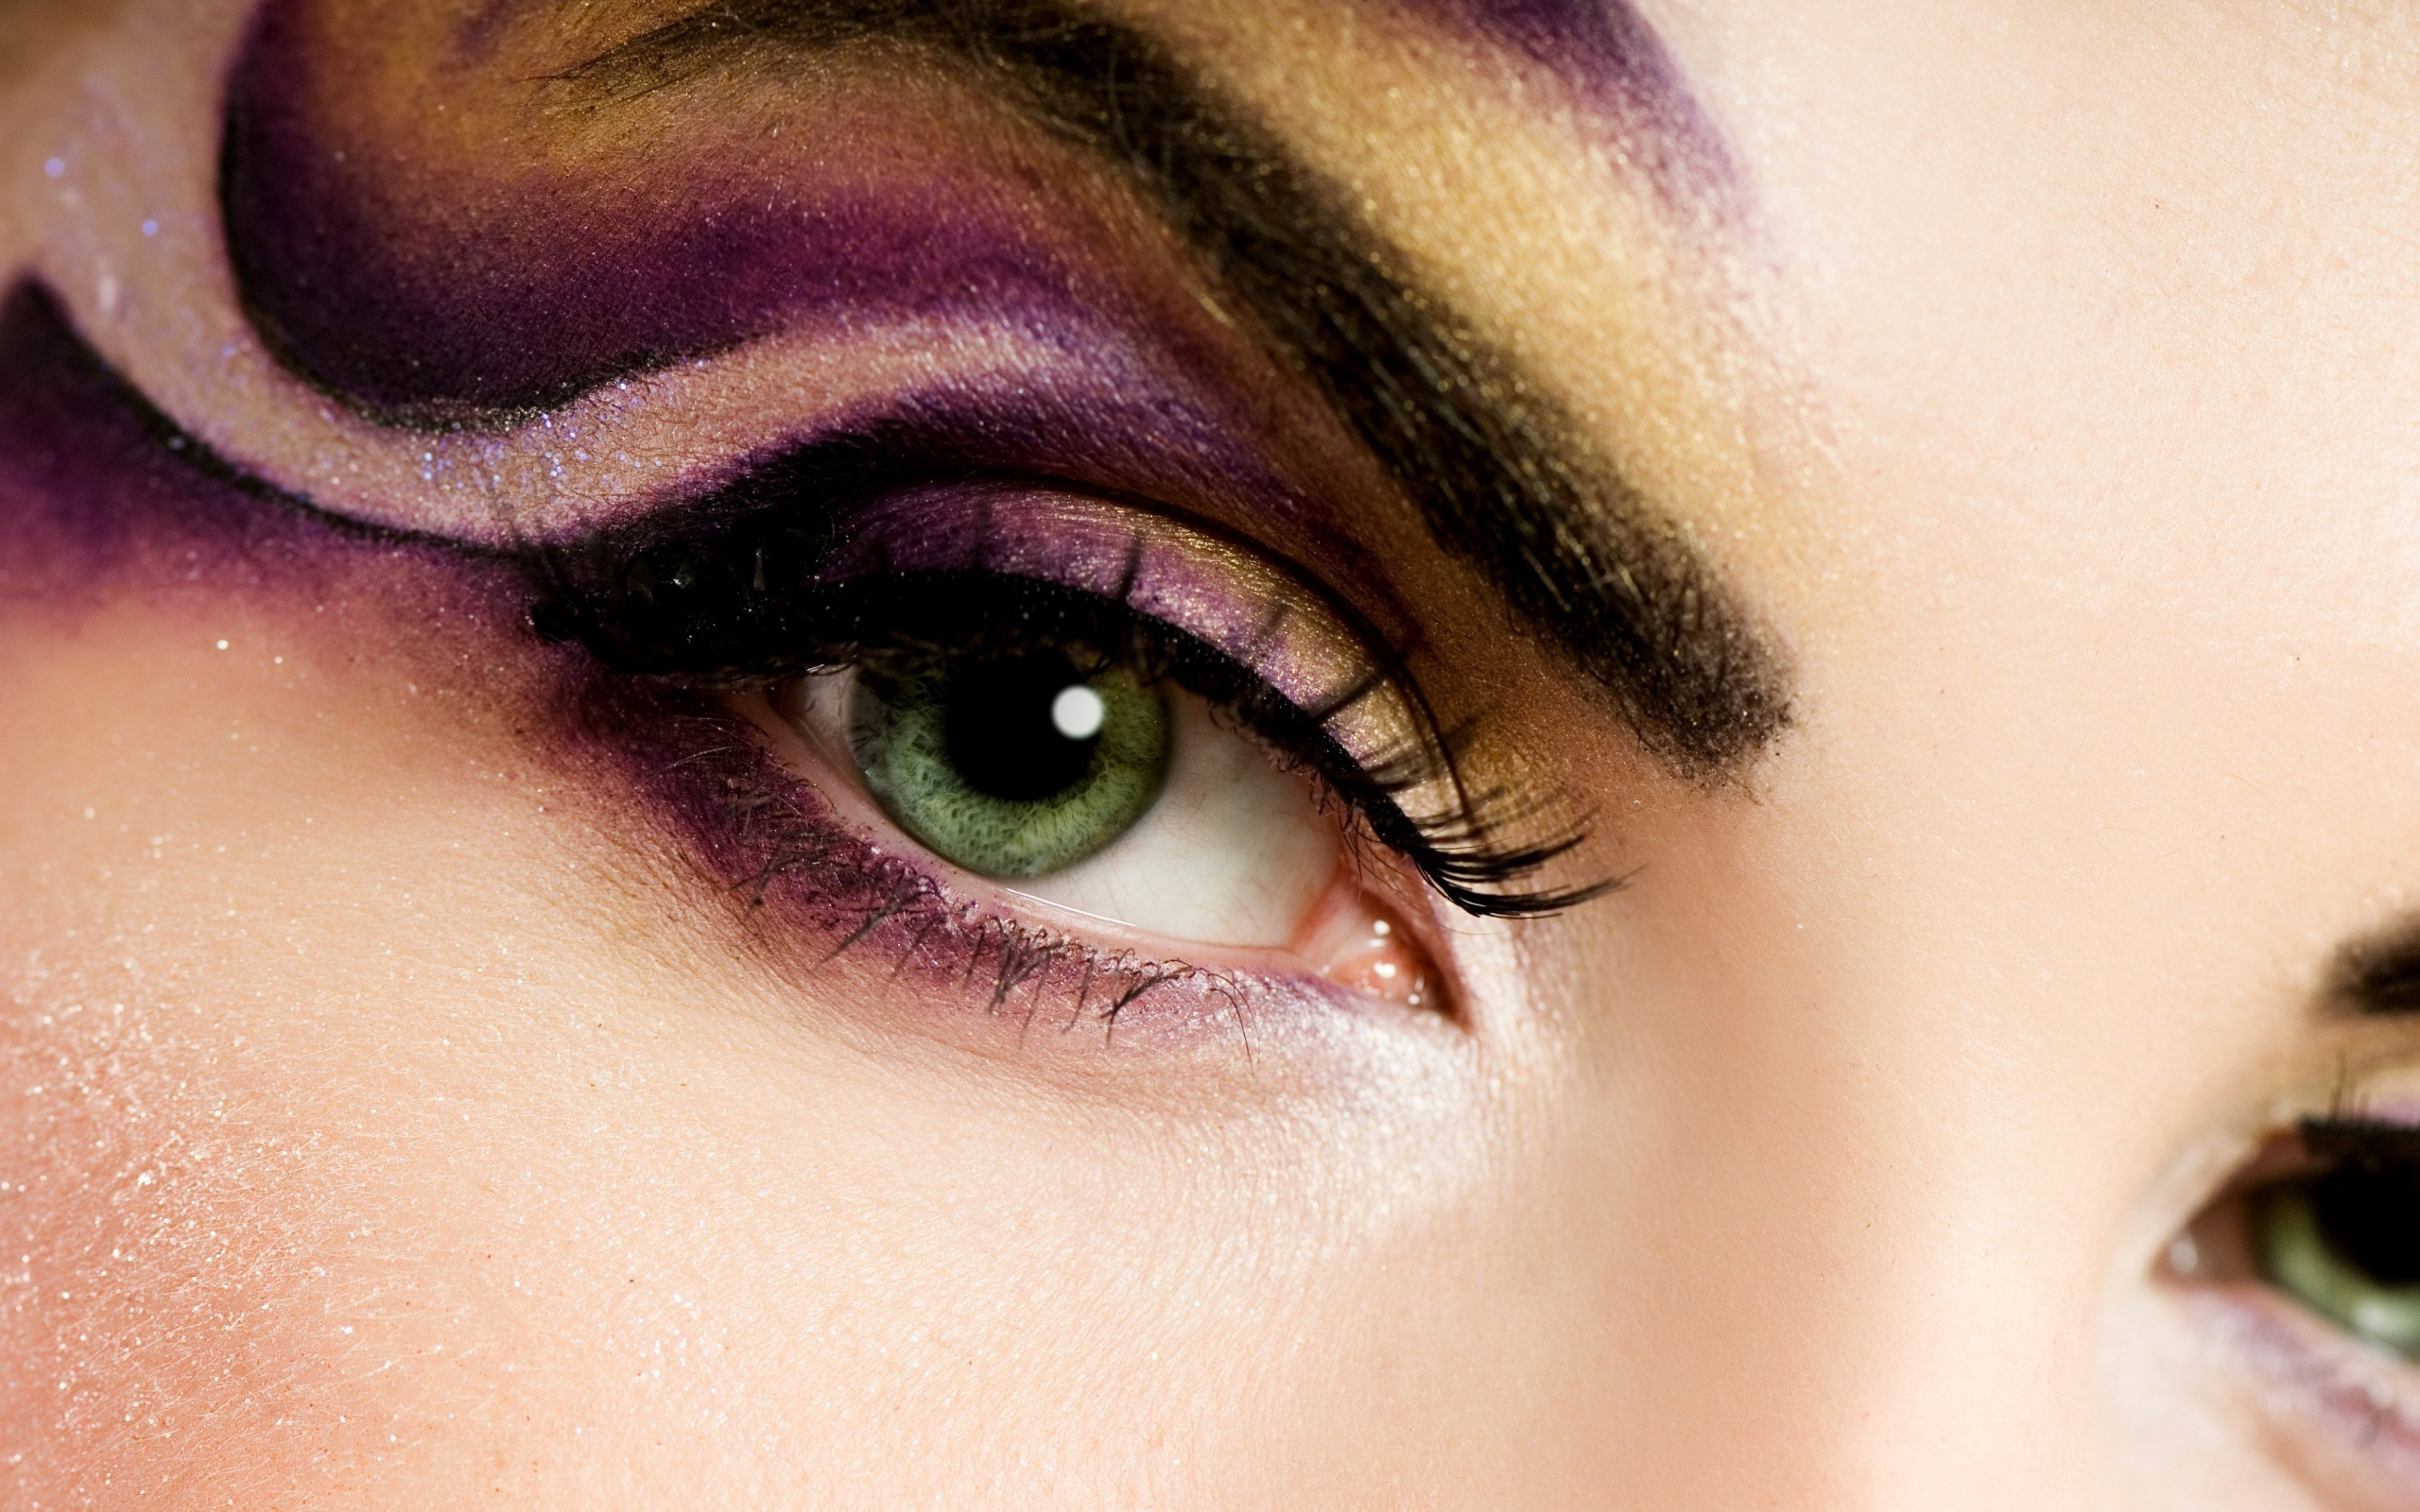 20 Fantastic Hd Makeup Wallpapers Hdwallsource Com